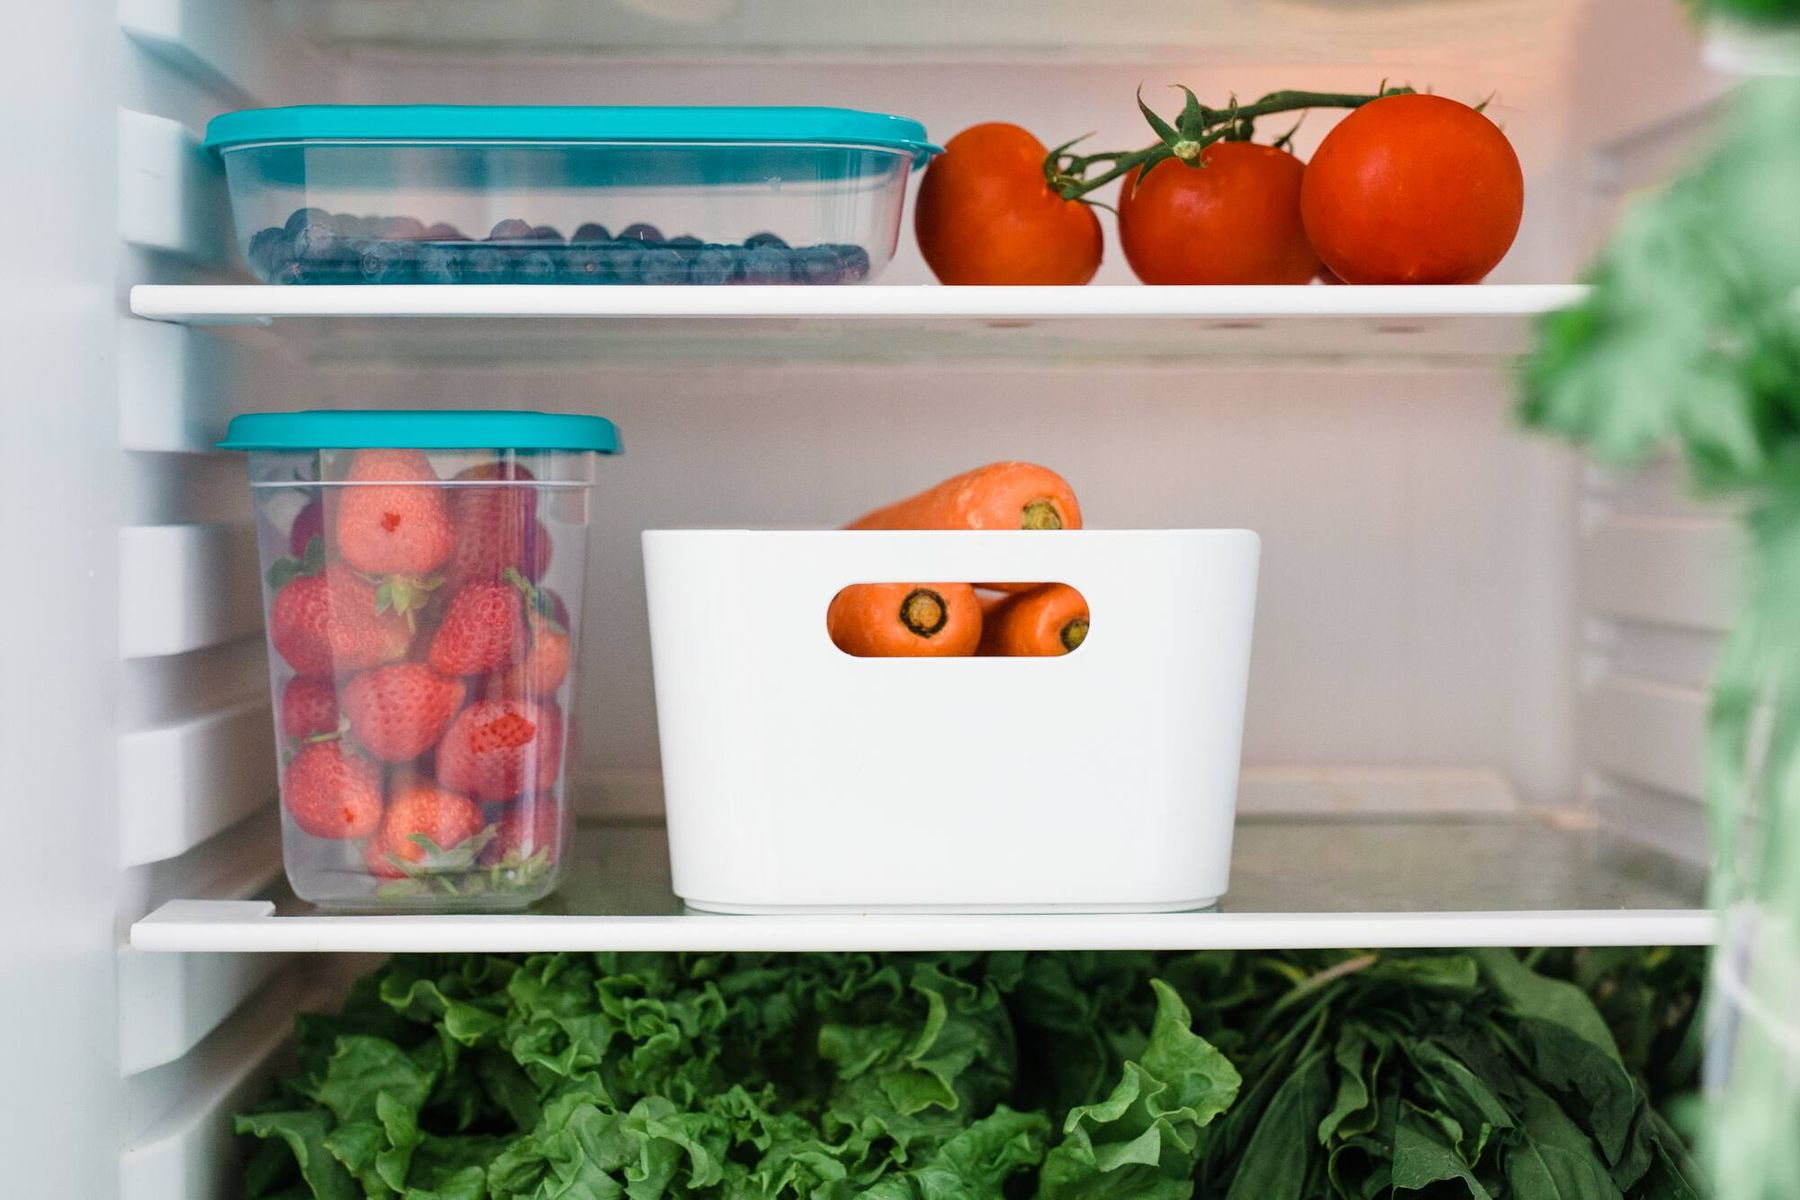 fruits and vegetables organized in the fridge